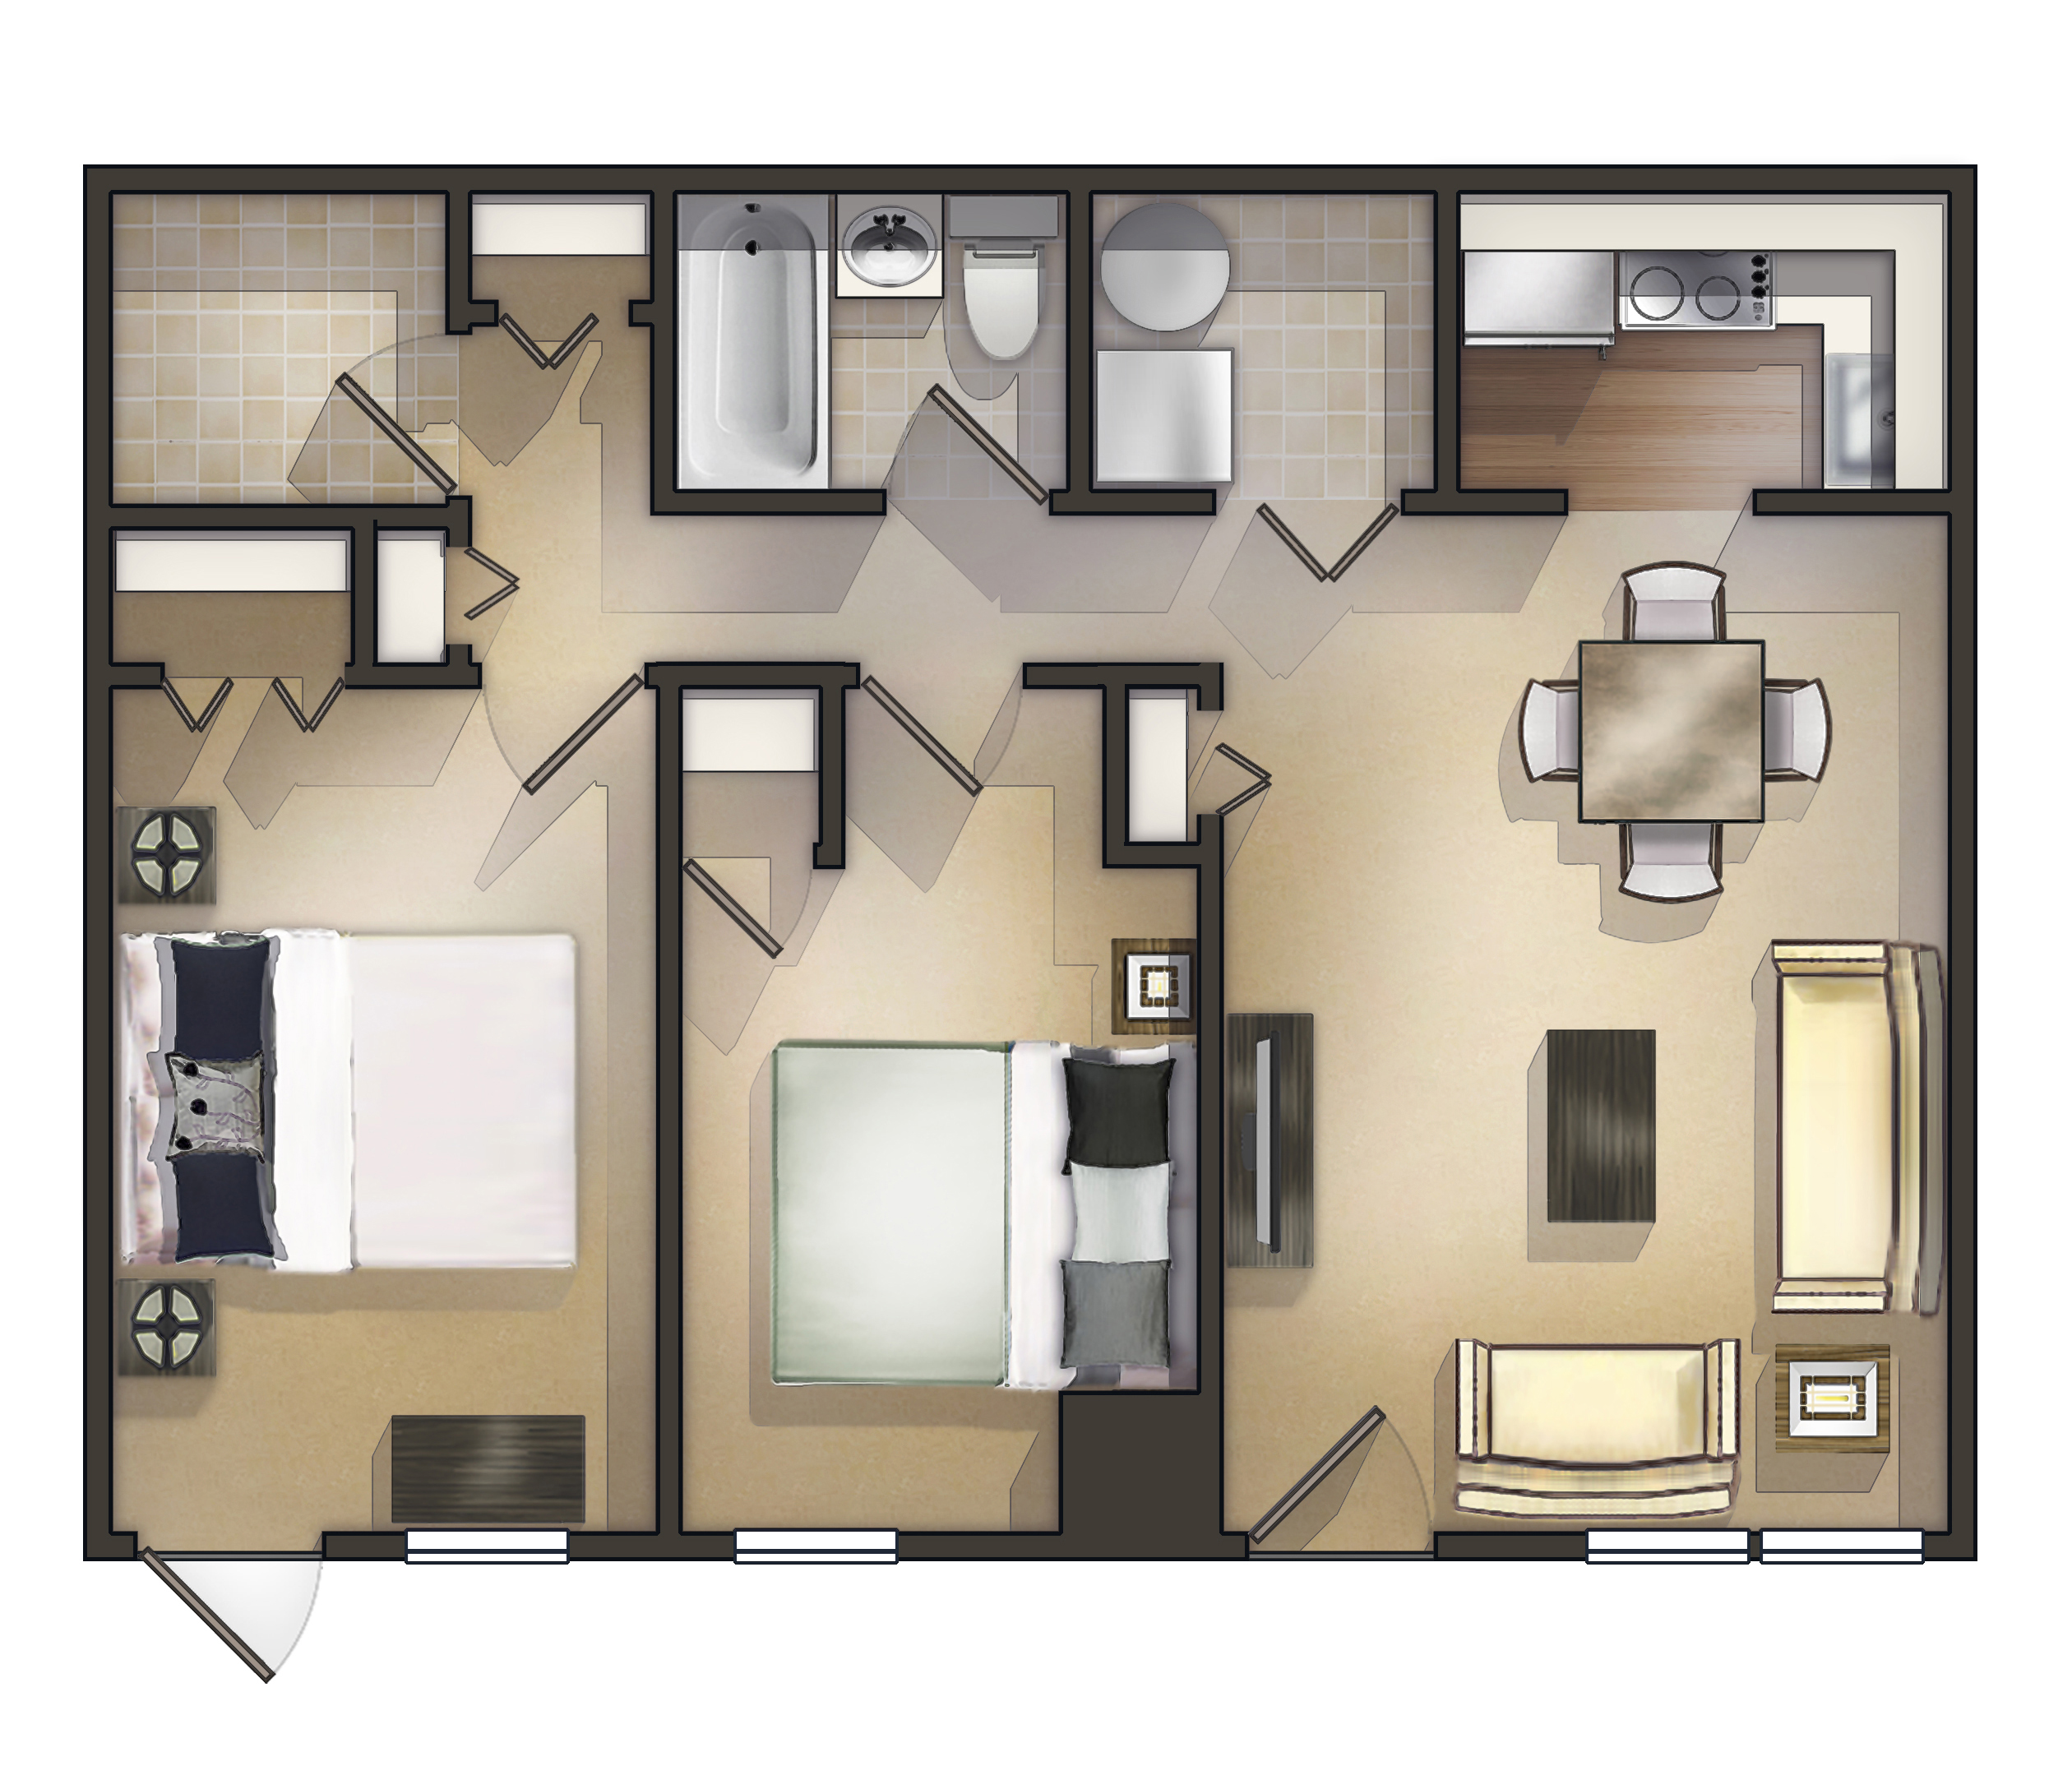 2 Bedroom Garden Apartment Floorplan